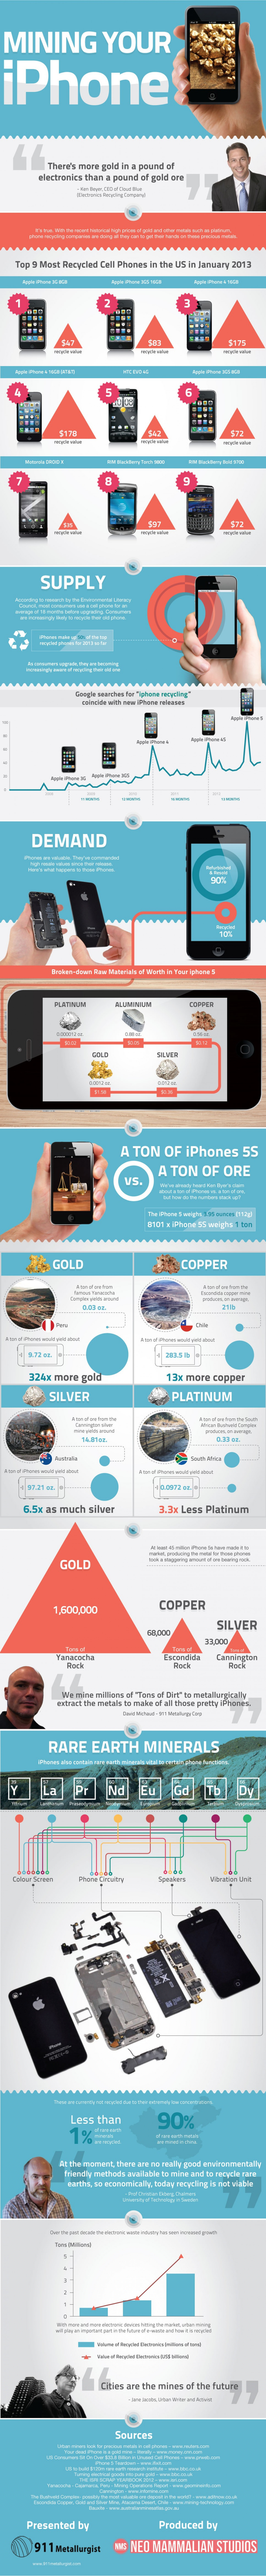 Mining Your iPhone [Infographic] Infographic